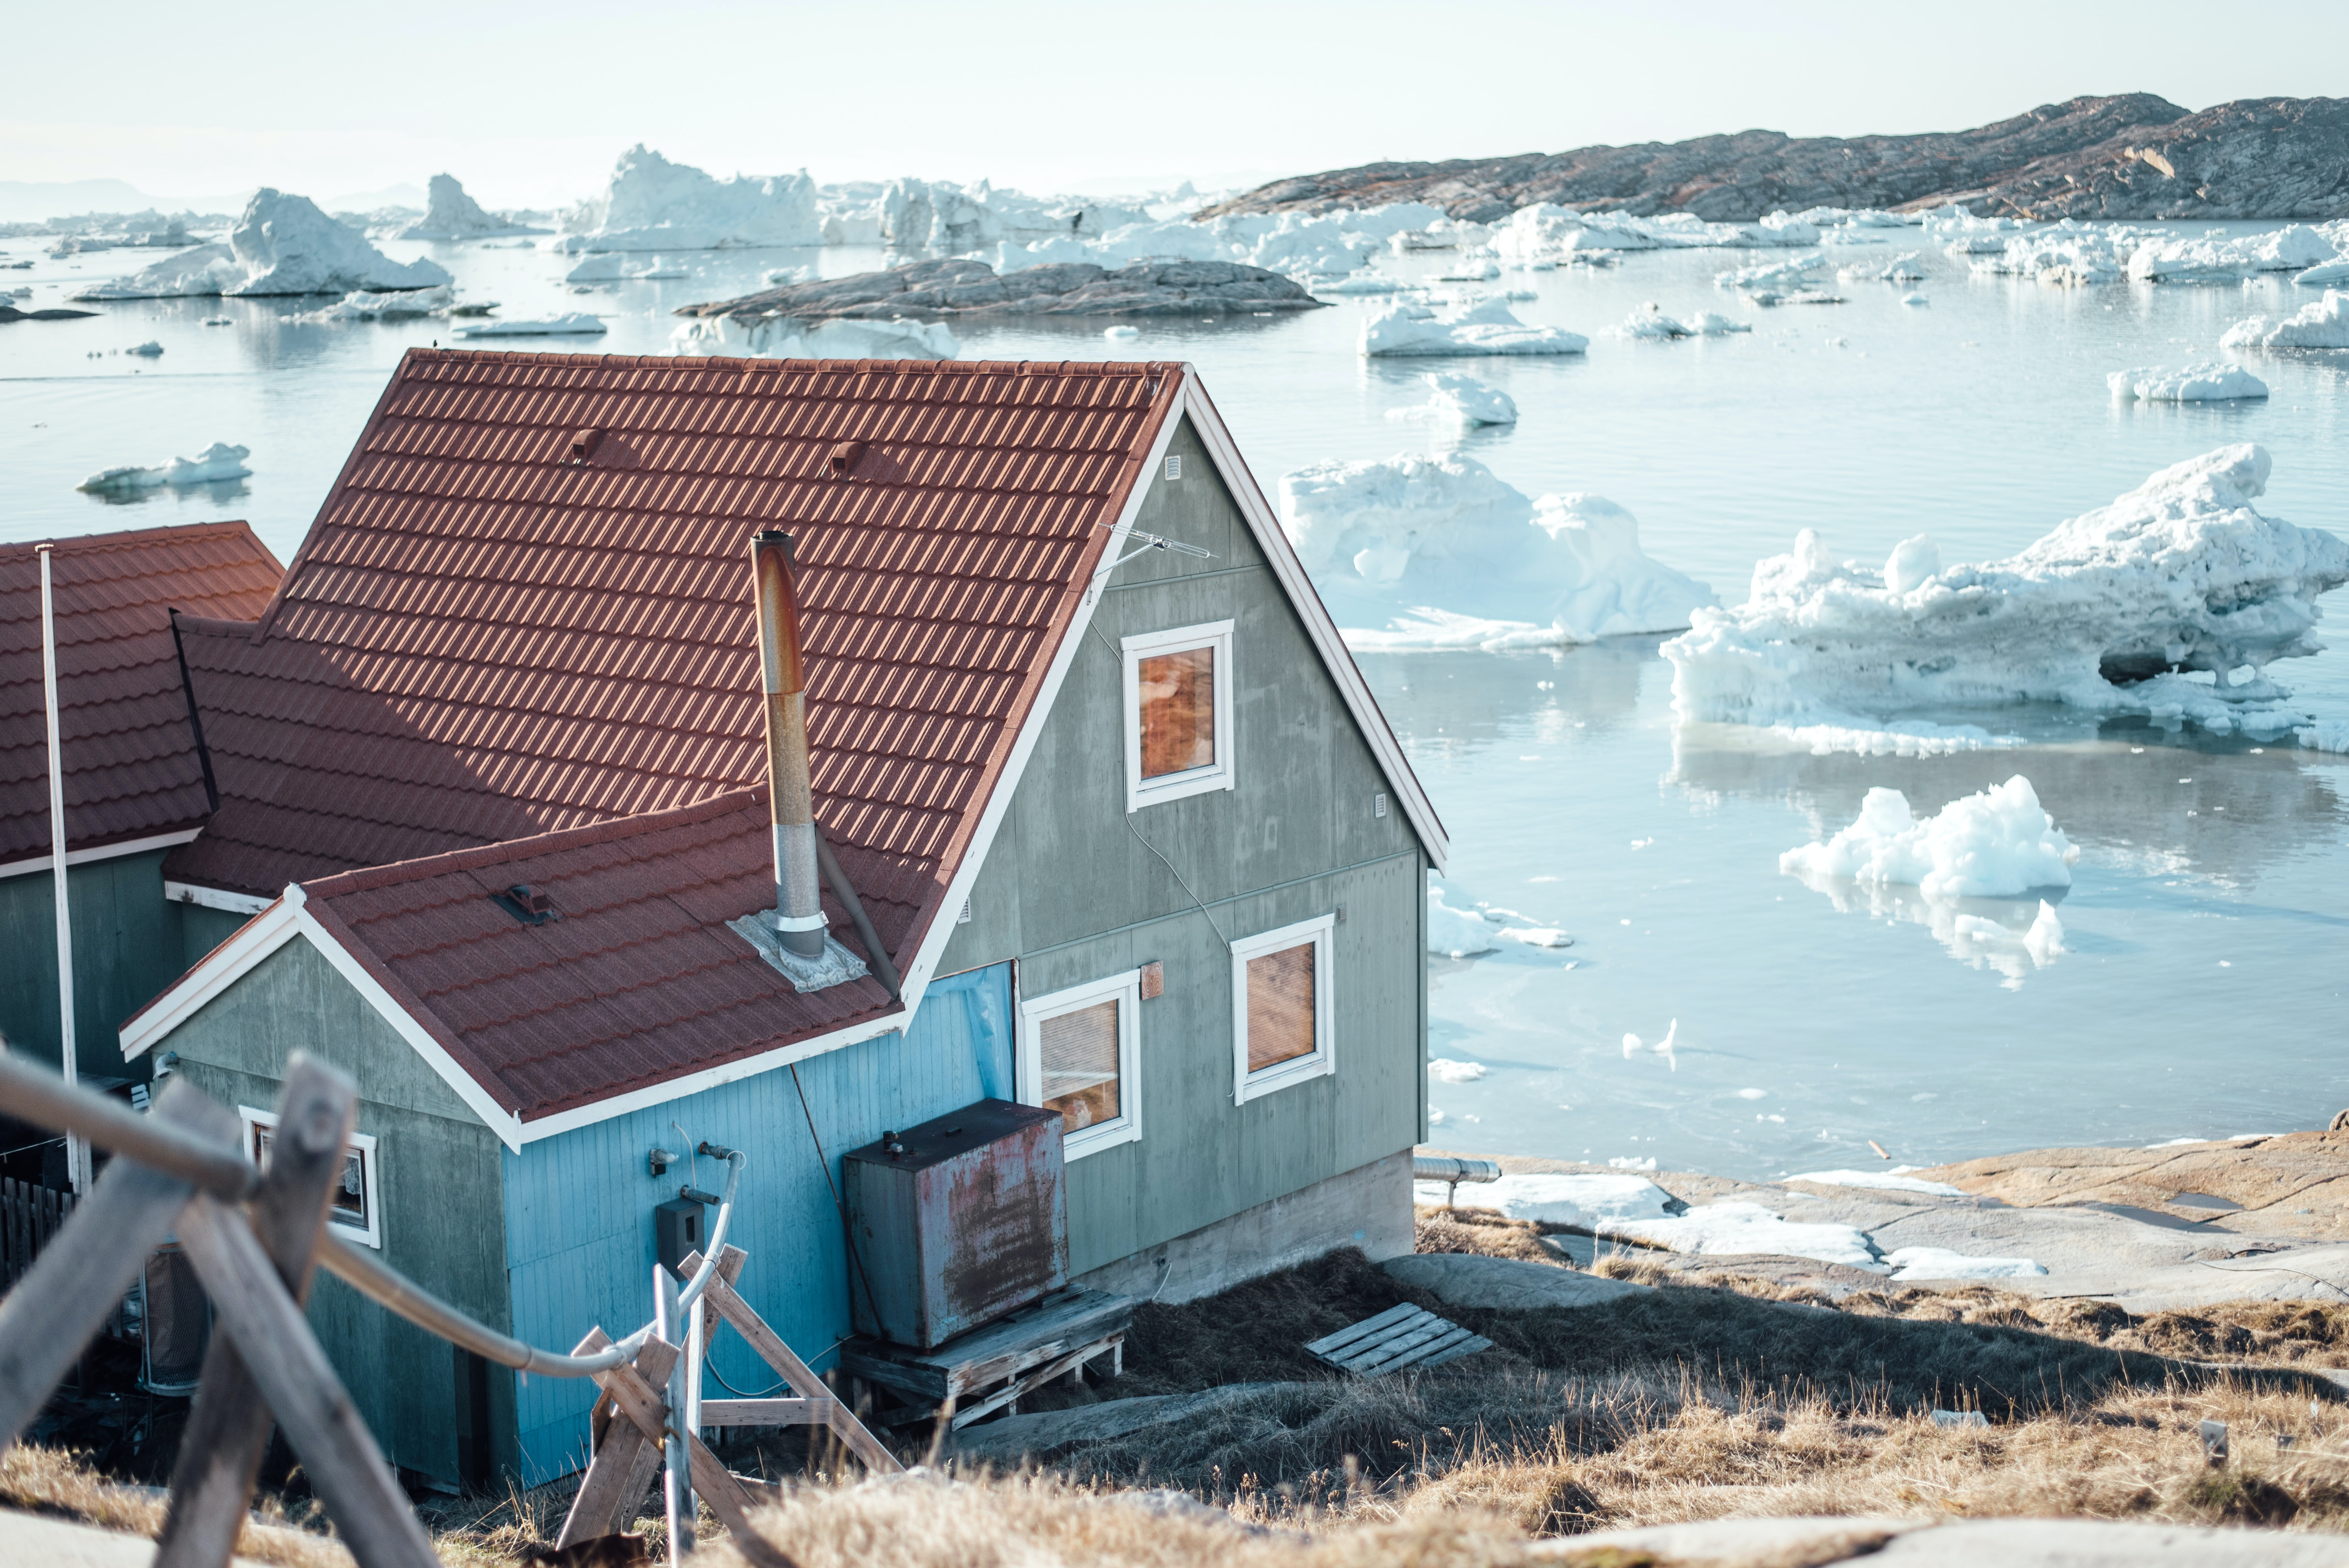 house beside body of water with icebergs